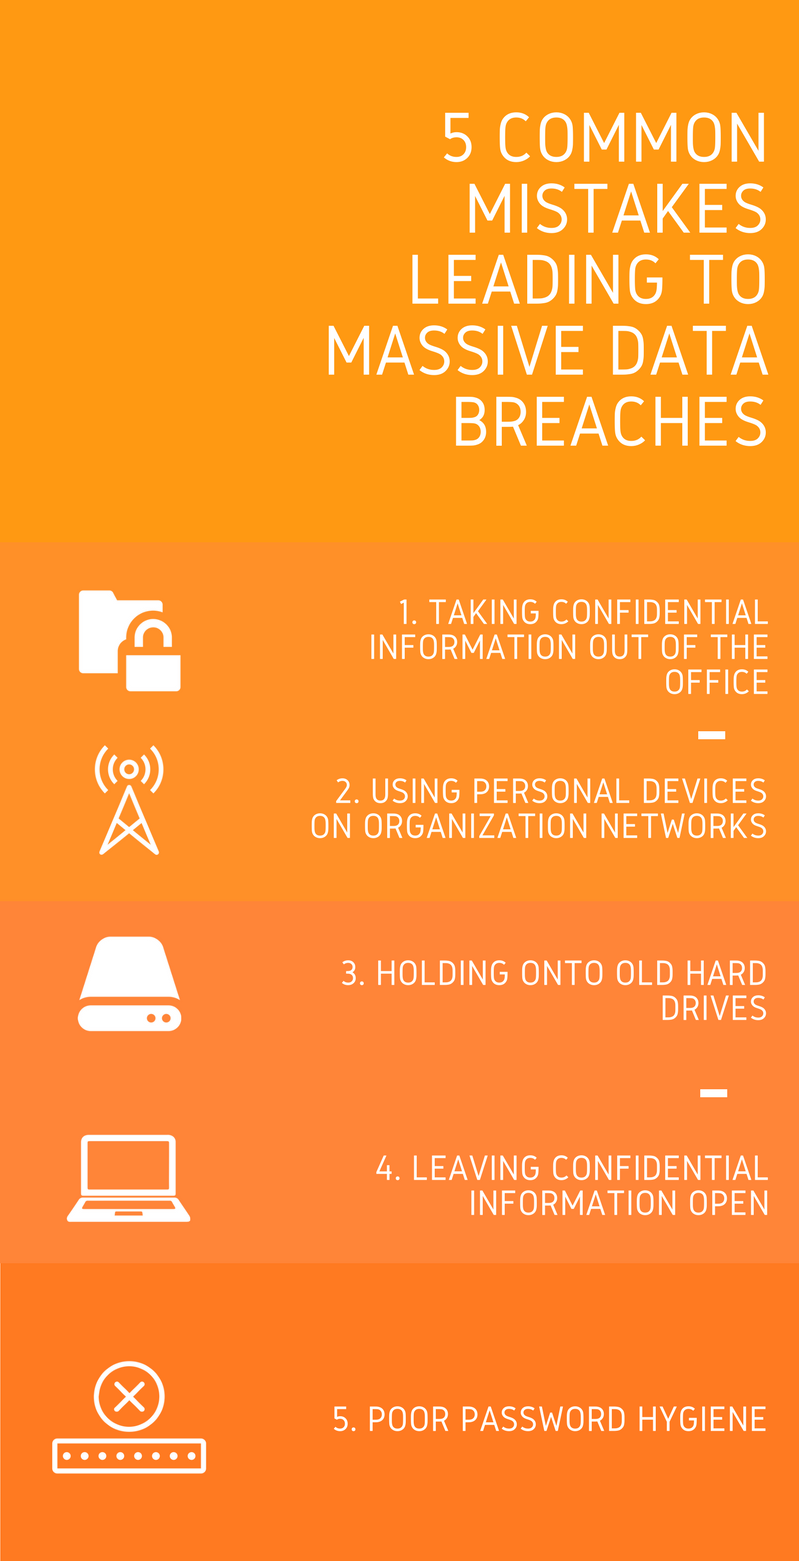 Common mistakes made everyday that lead to massive data breaches which are preventable.